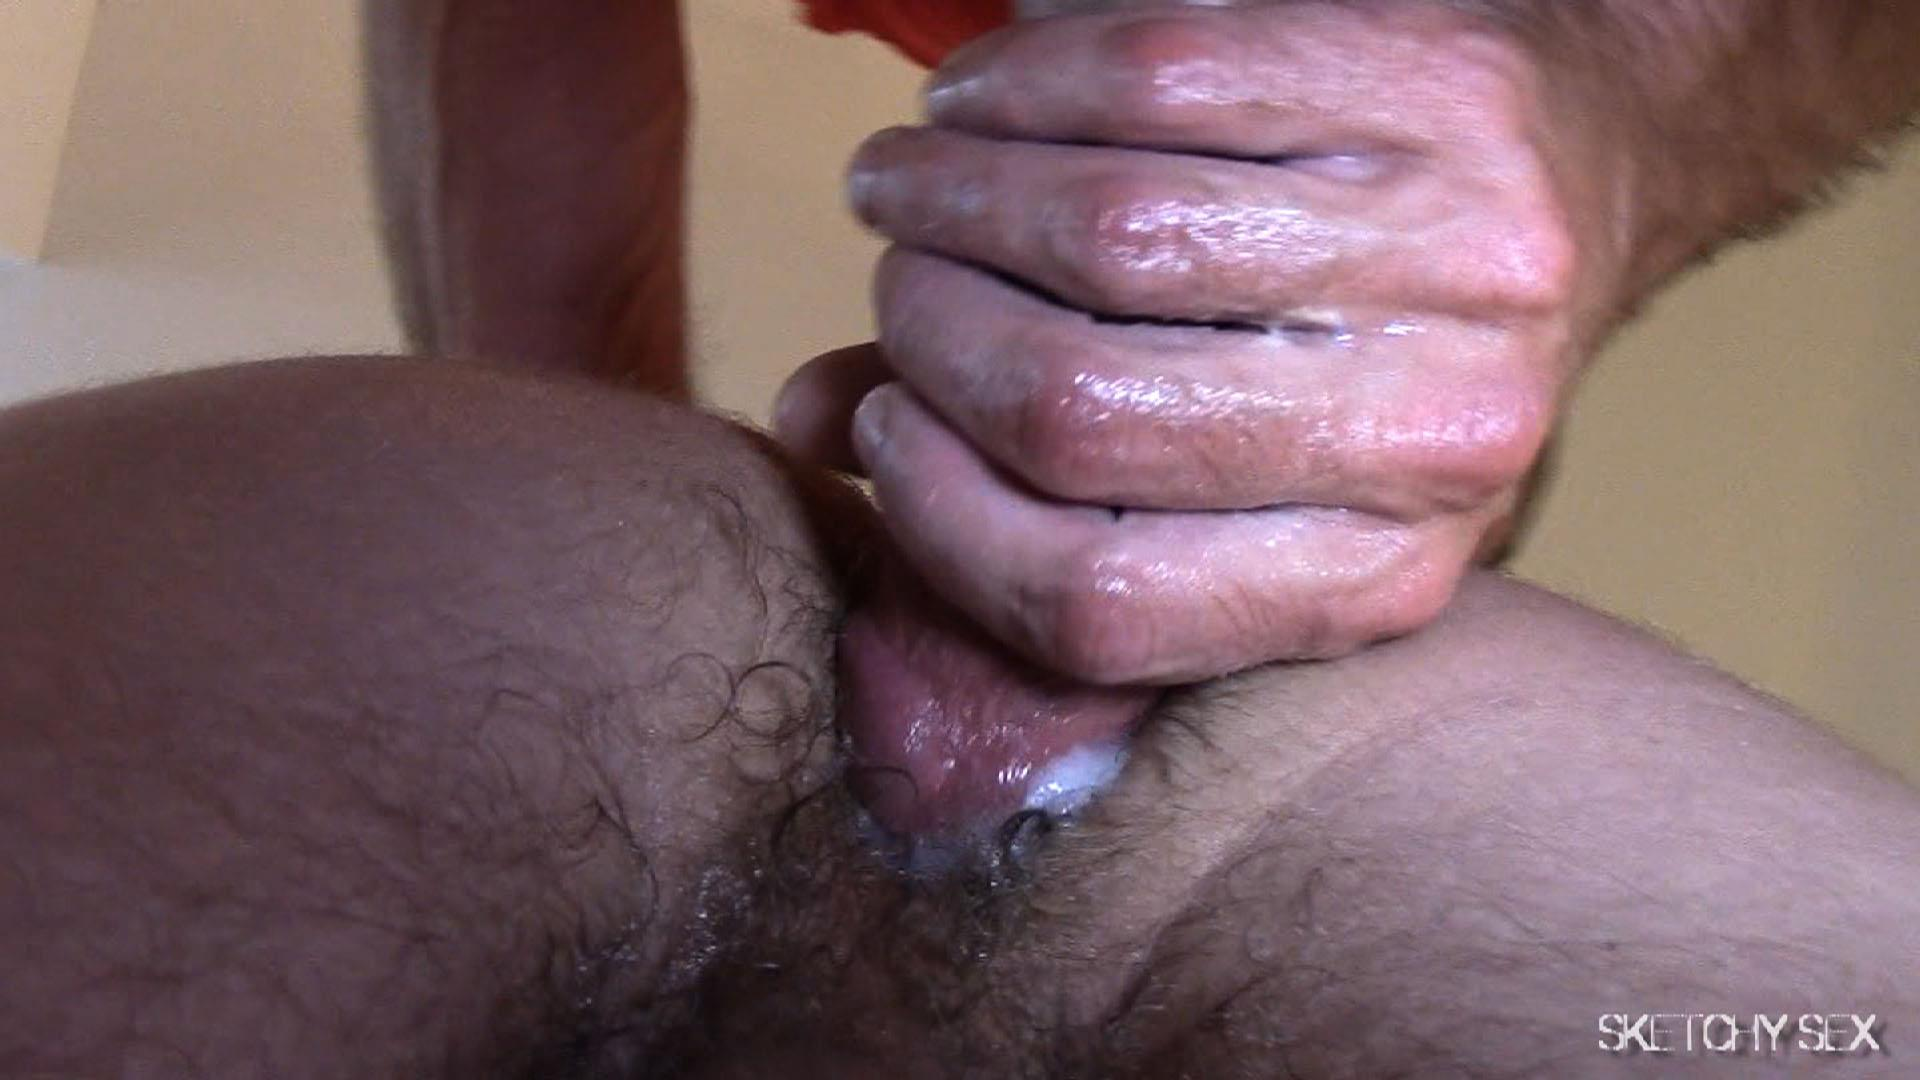 """Sketchy-Sex-Nate-Getting-Fucked-Bareback-By-A-10-Inch-Craigslist-Cock-Amateur-Gay-Porn-10 Taking A 10"""" Craigslist Cock Bareback While The Roommate Watches"""